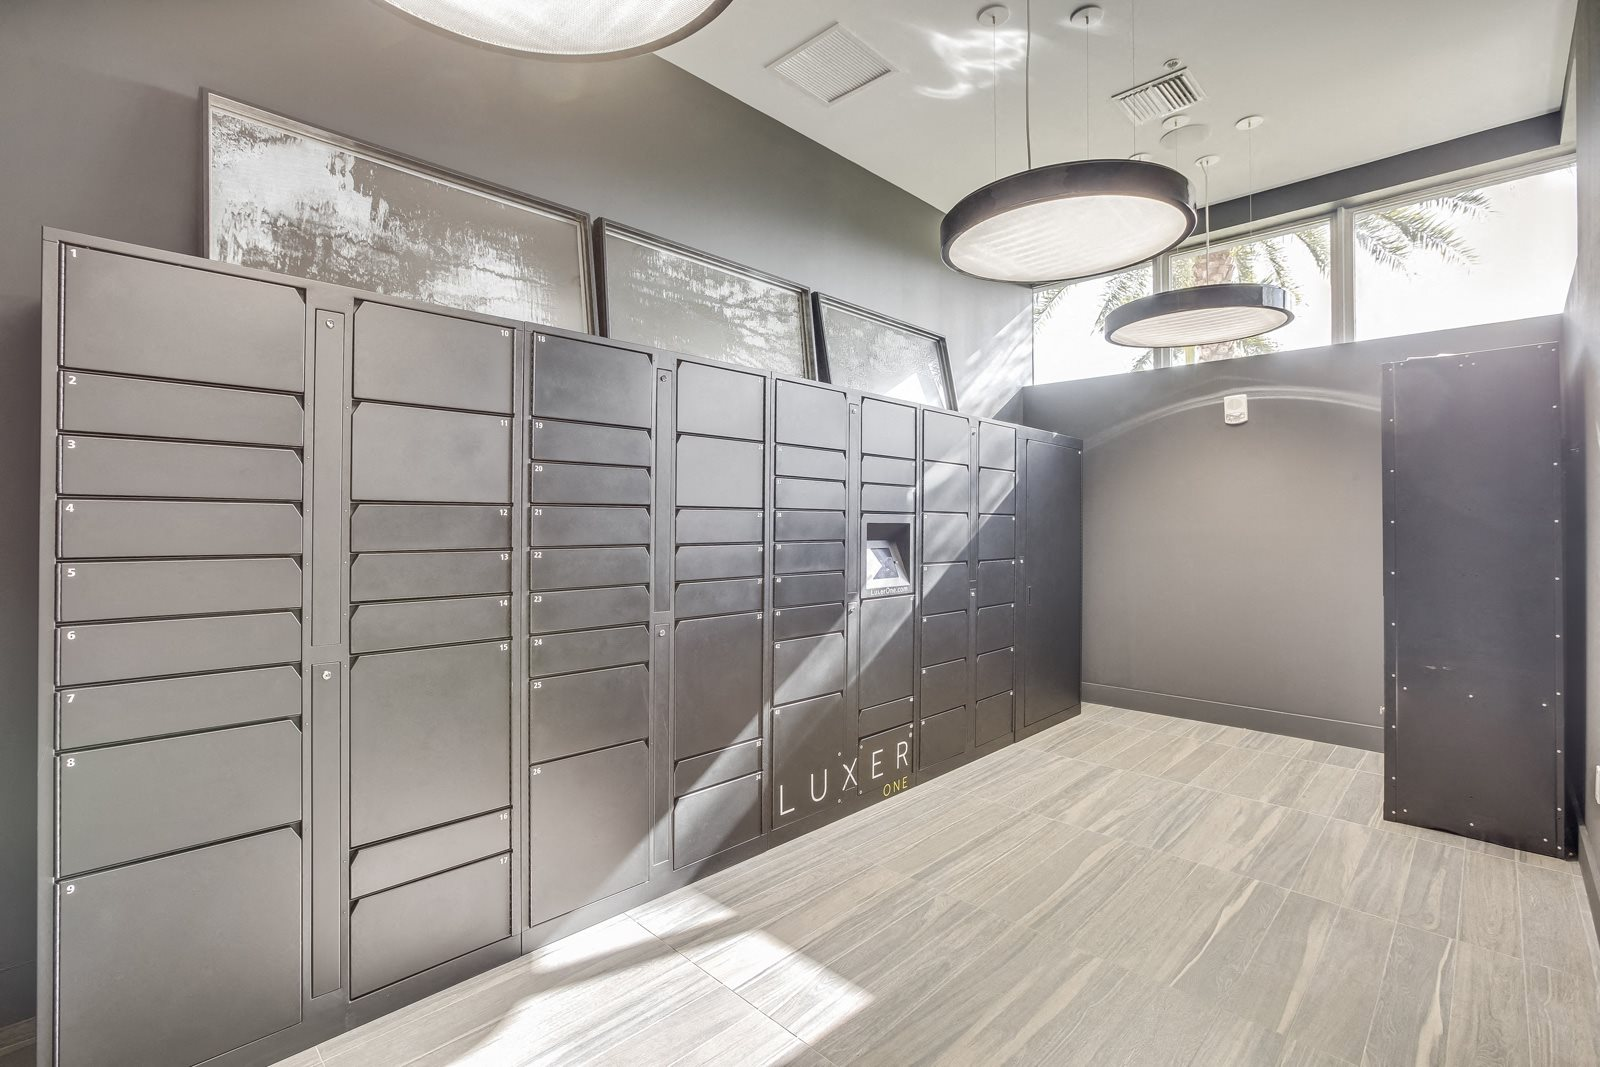 24 Hour Package Lockers